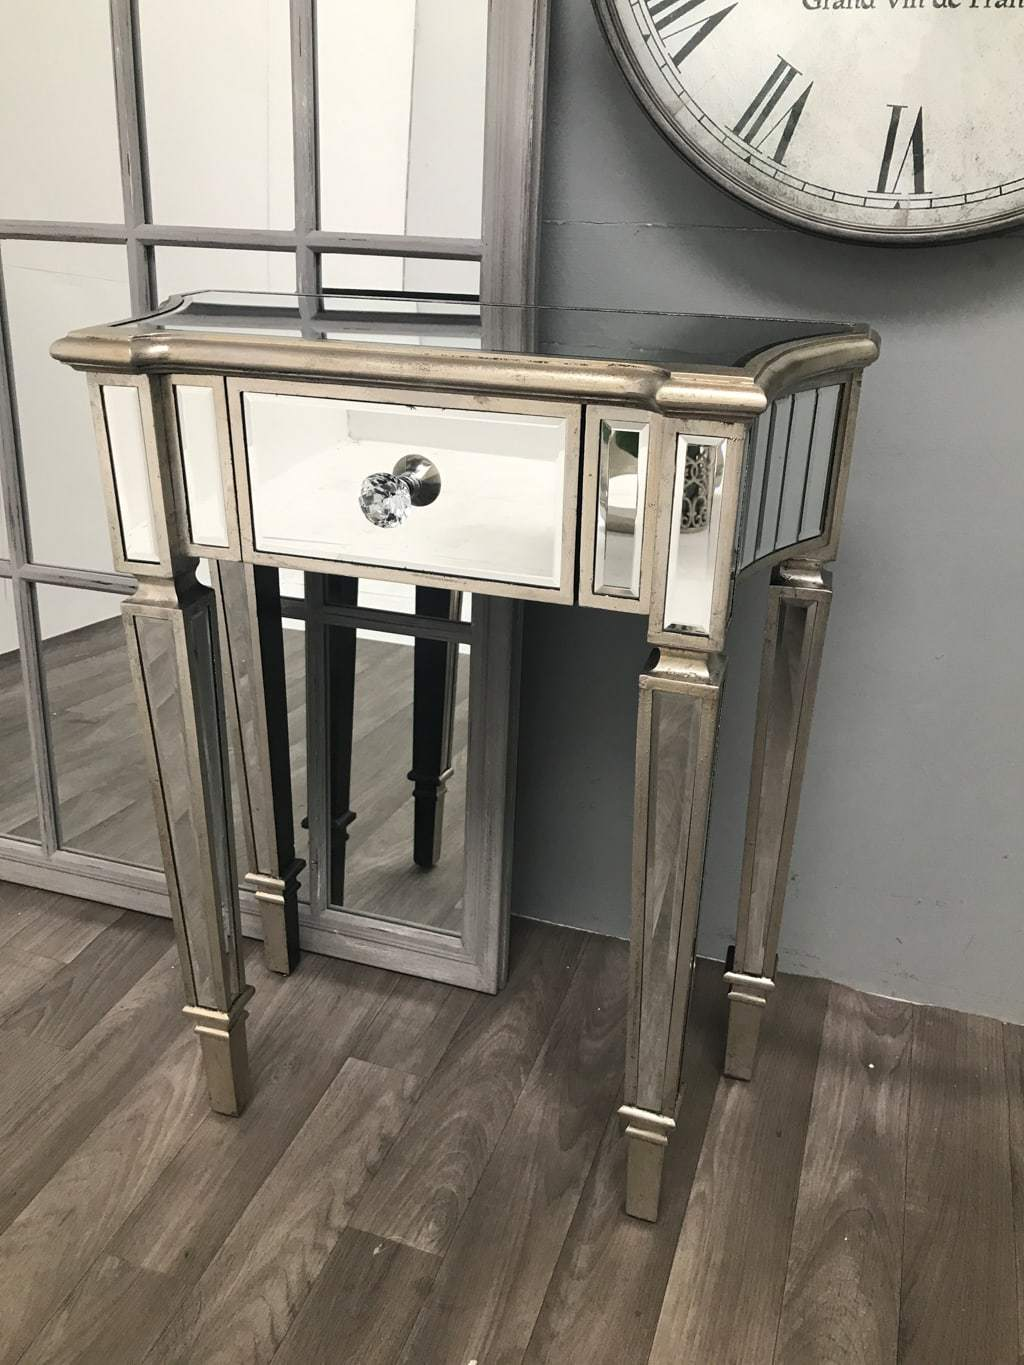 Mirrored Side Table with 1 Drawer - Marbella Collection